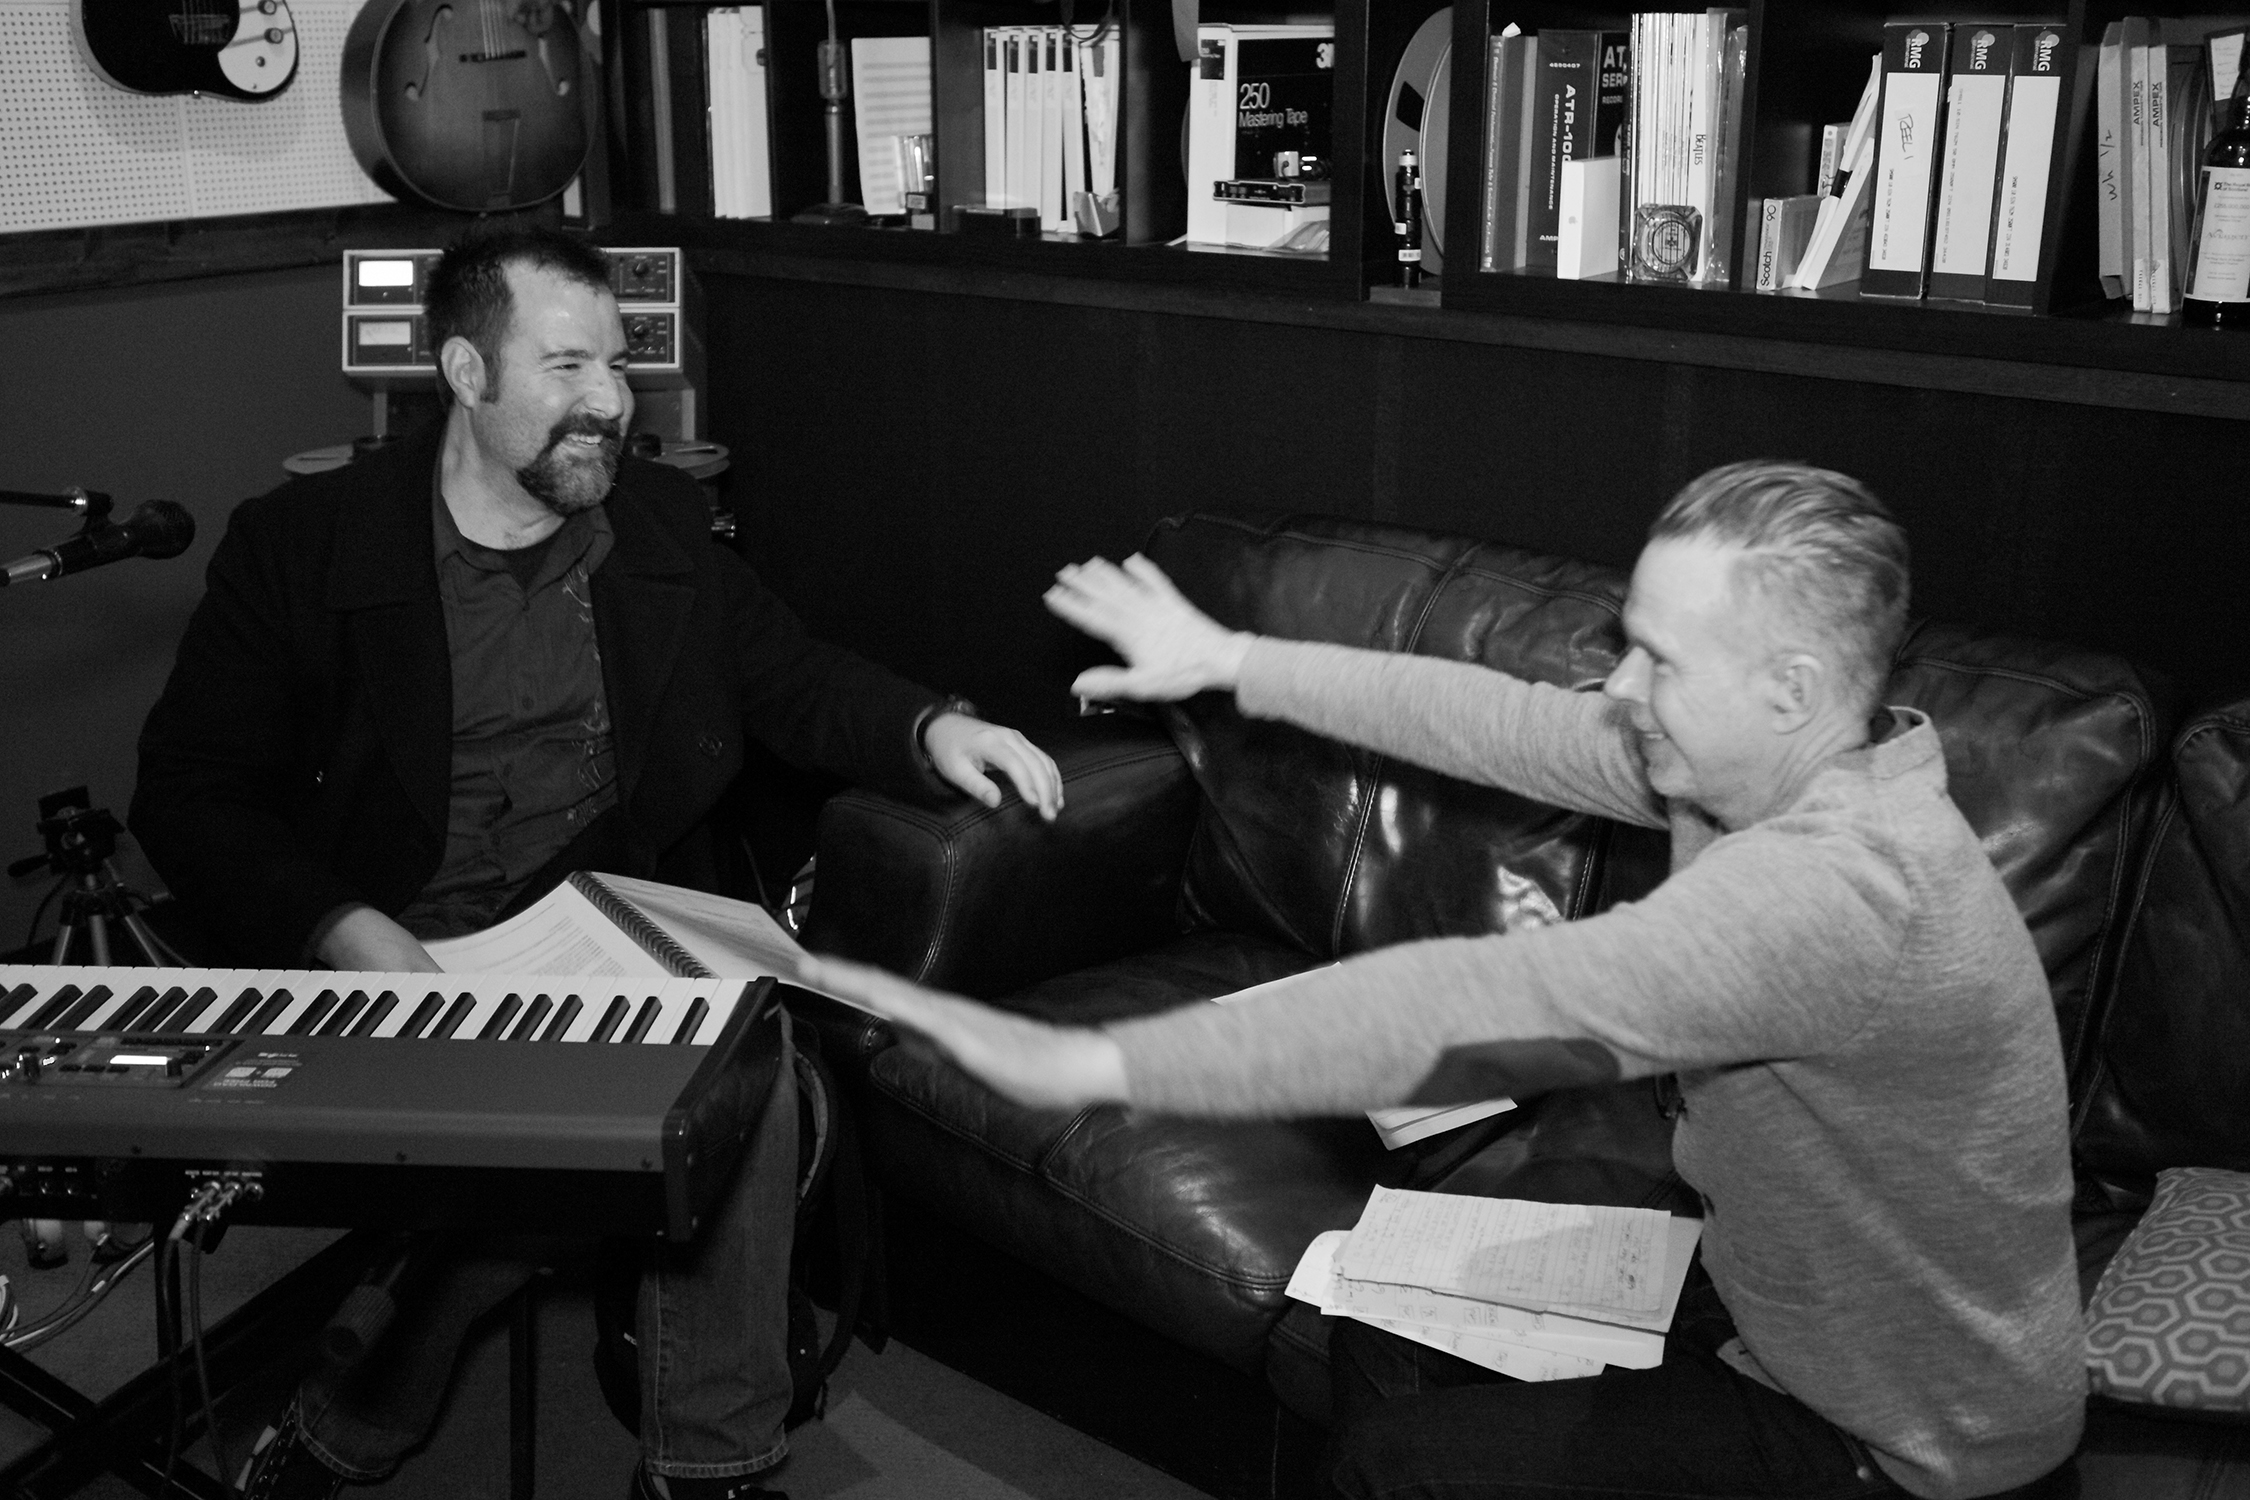 """David Willersdorf and Rick Price in the Sputnik Sound studios of East Nashville during the recording of David's """"Fire This Love"""" album. [Photo Credit: Price Harrison]"""